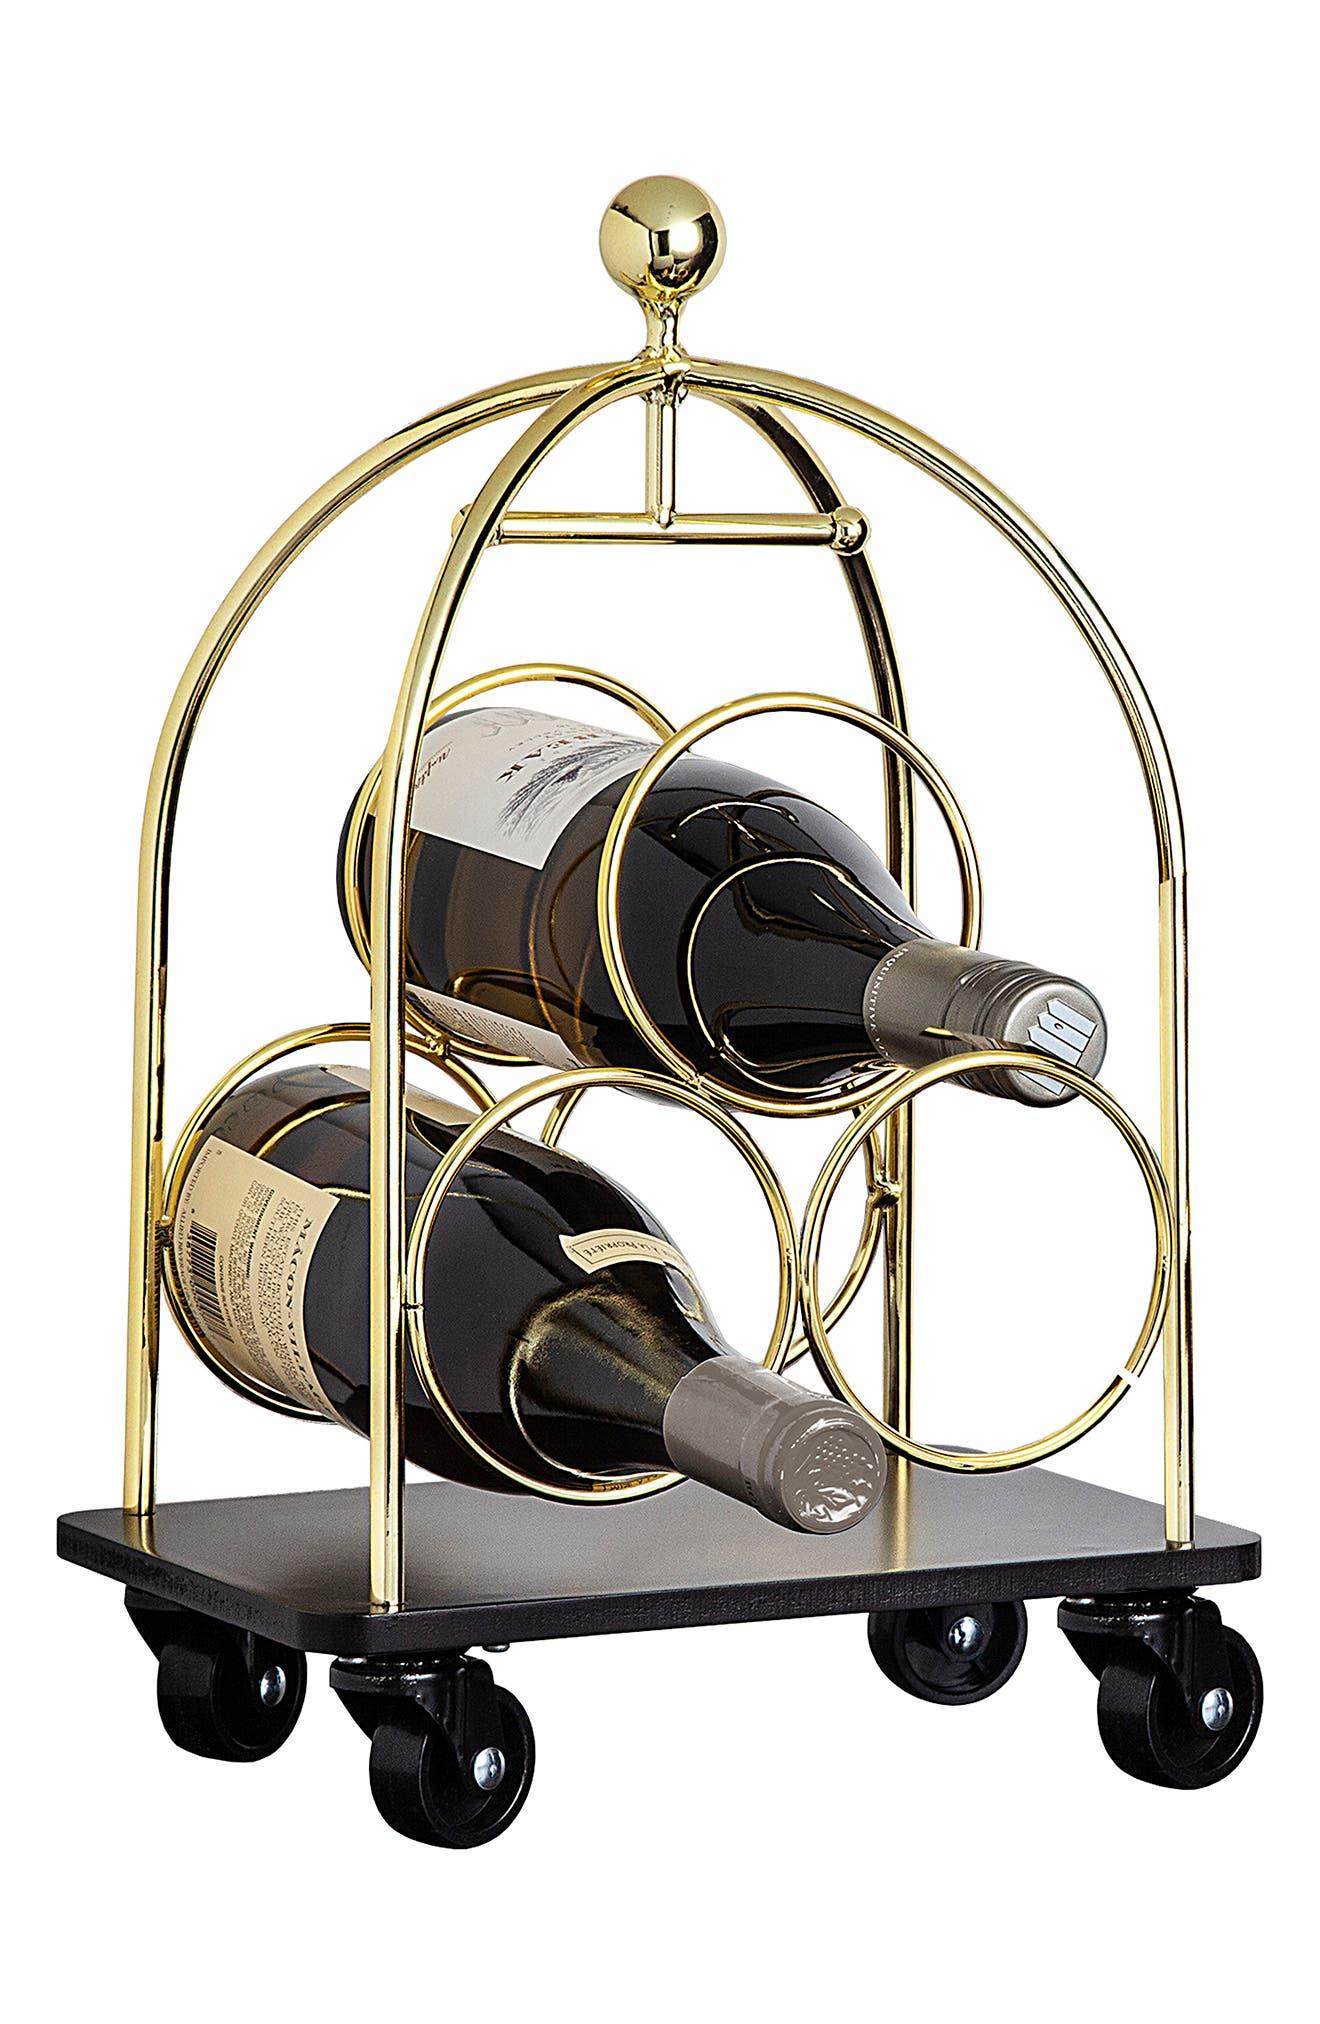 Summon the porter for your Pinot or the bellhop for your Bordeaux with this three-bottle wine rack that delivers your libations in a posh-hotel luggage cart. Style Name: Godinger 3-Bottle Luggage Cart Wine Rack. Style Number: 6090213. Available in stores.